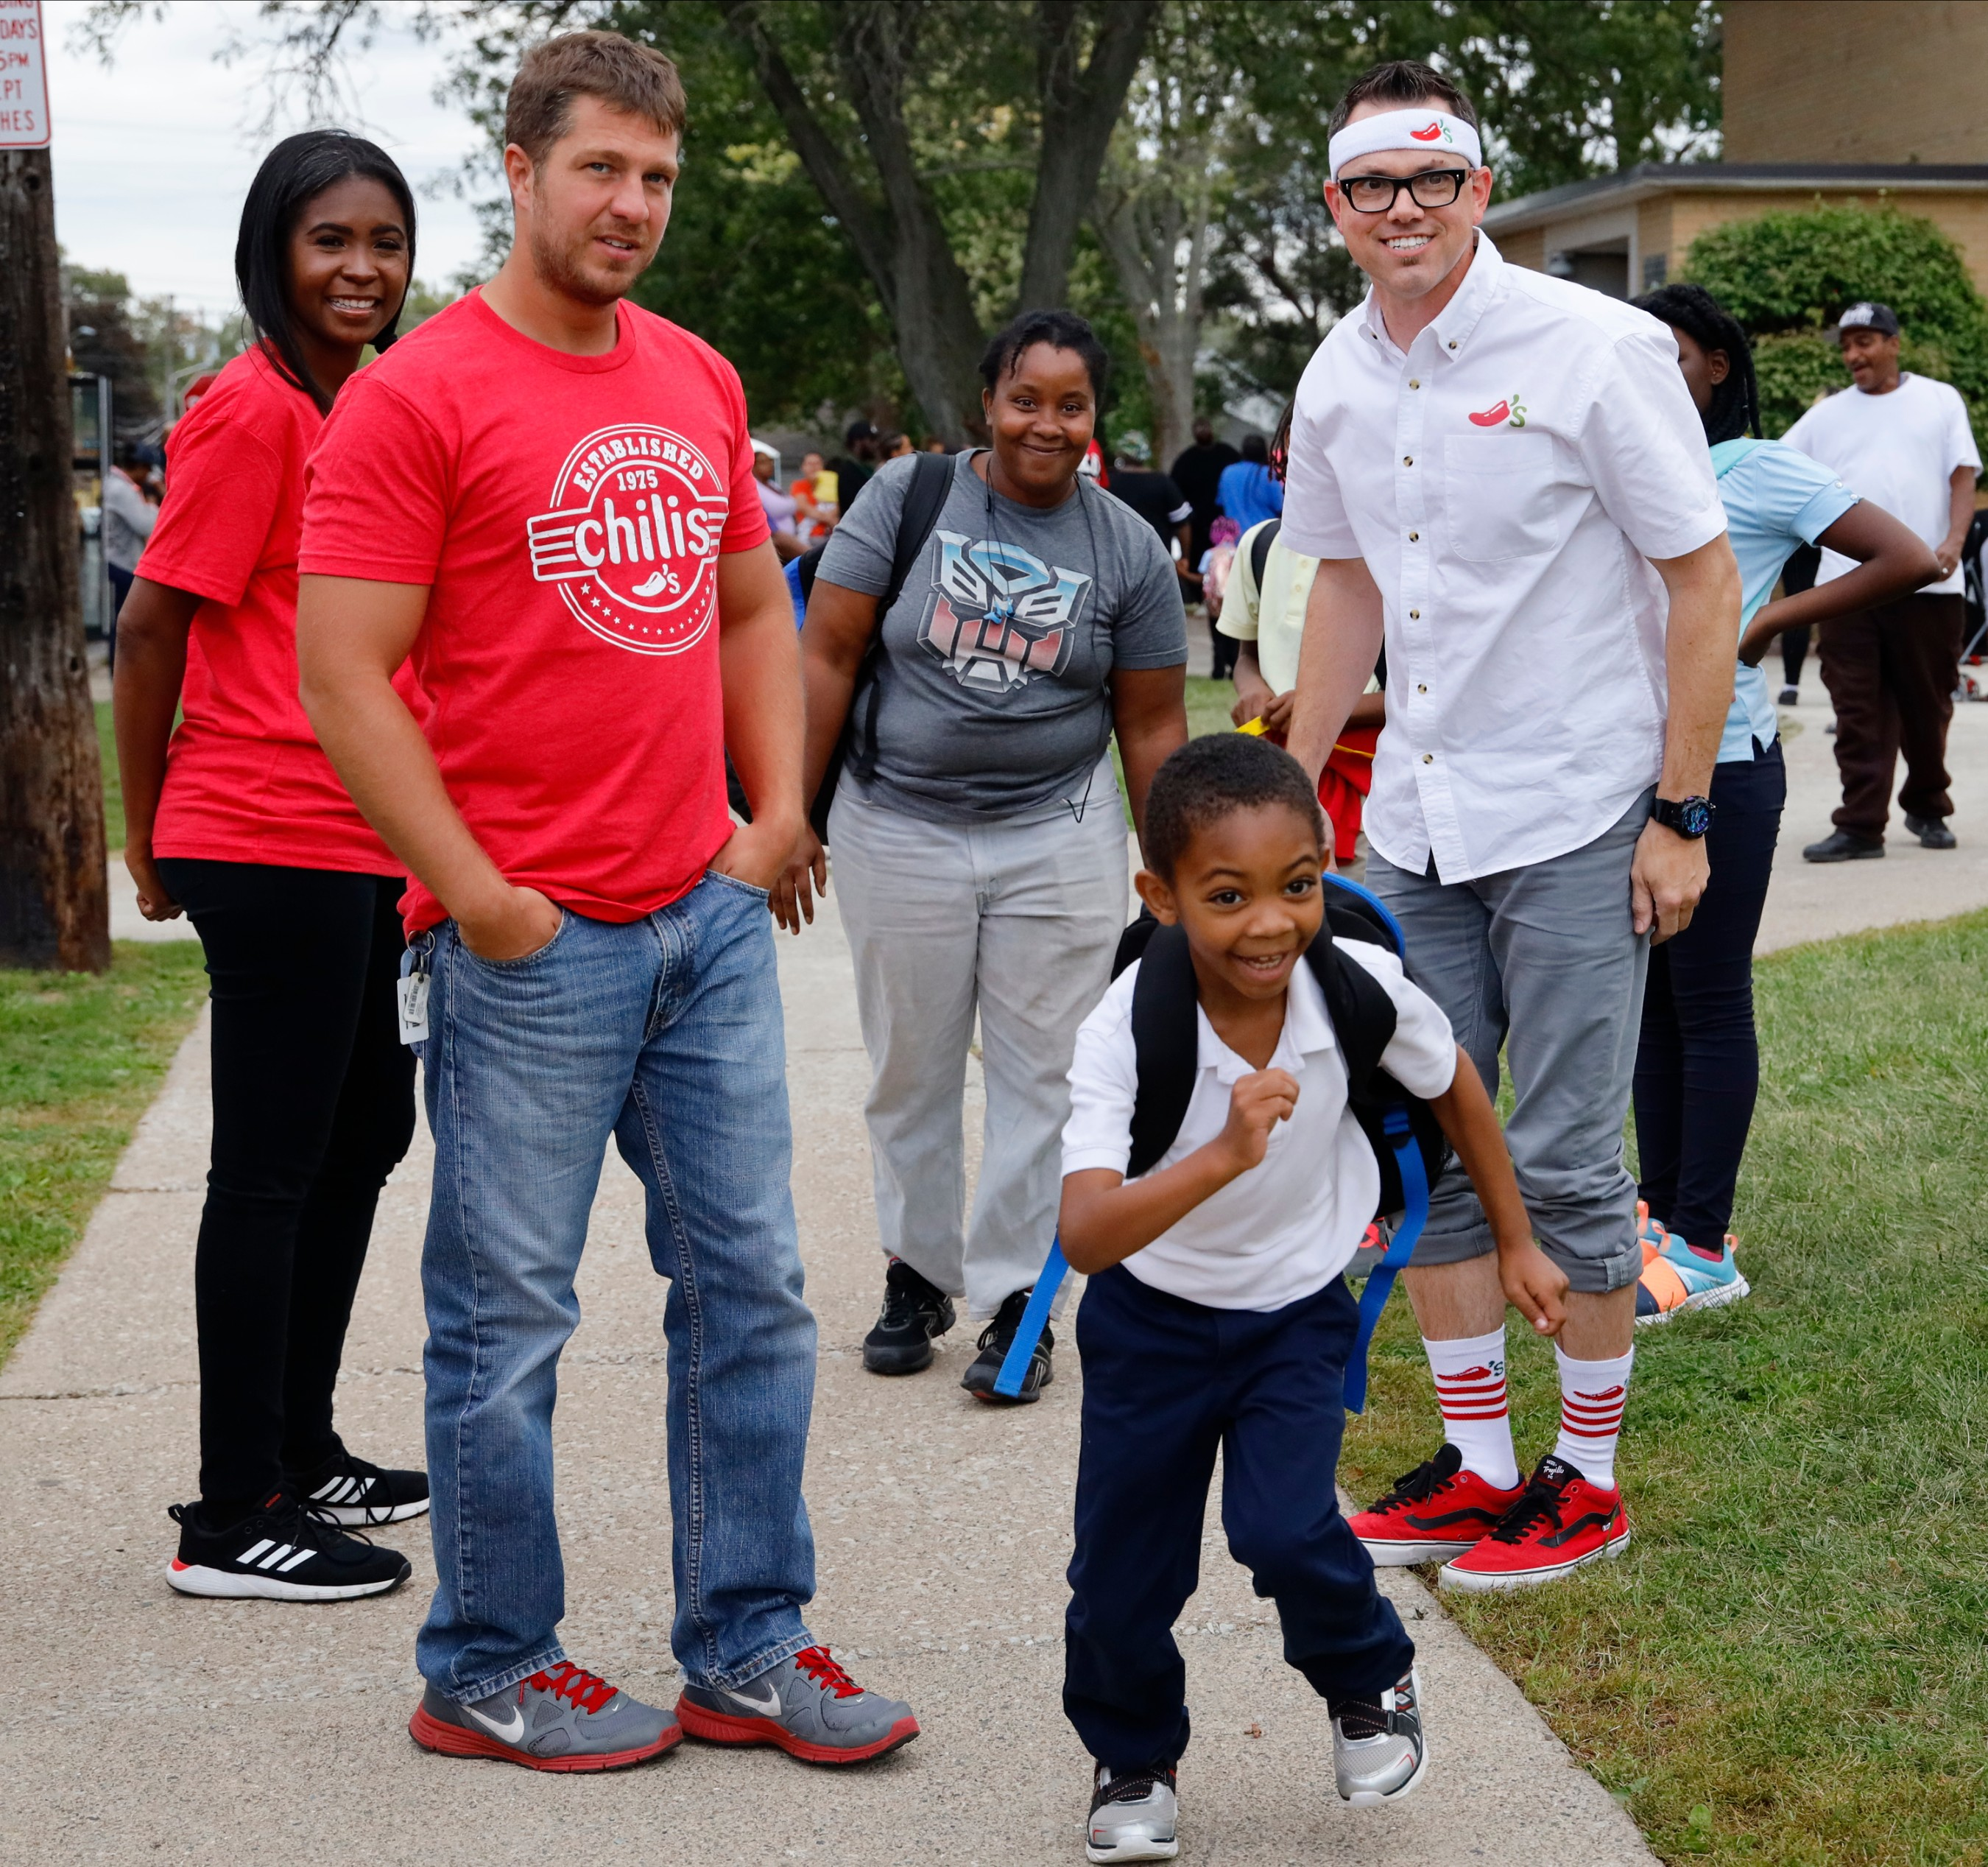 Chili's surprise and delights kids during after school pick up with one-of-a-kind bus ride.